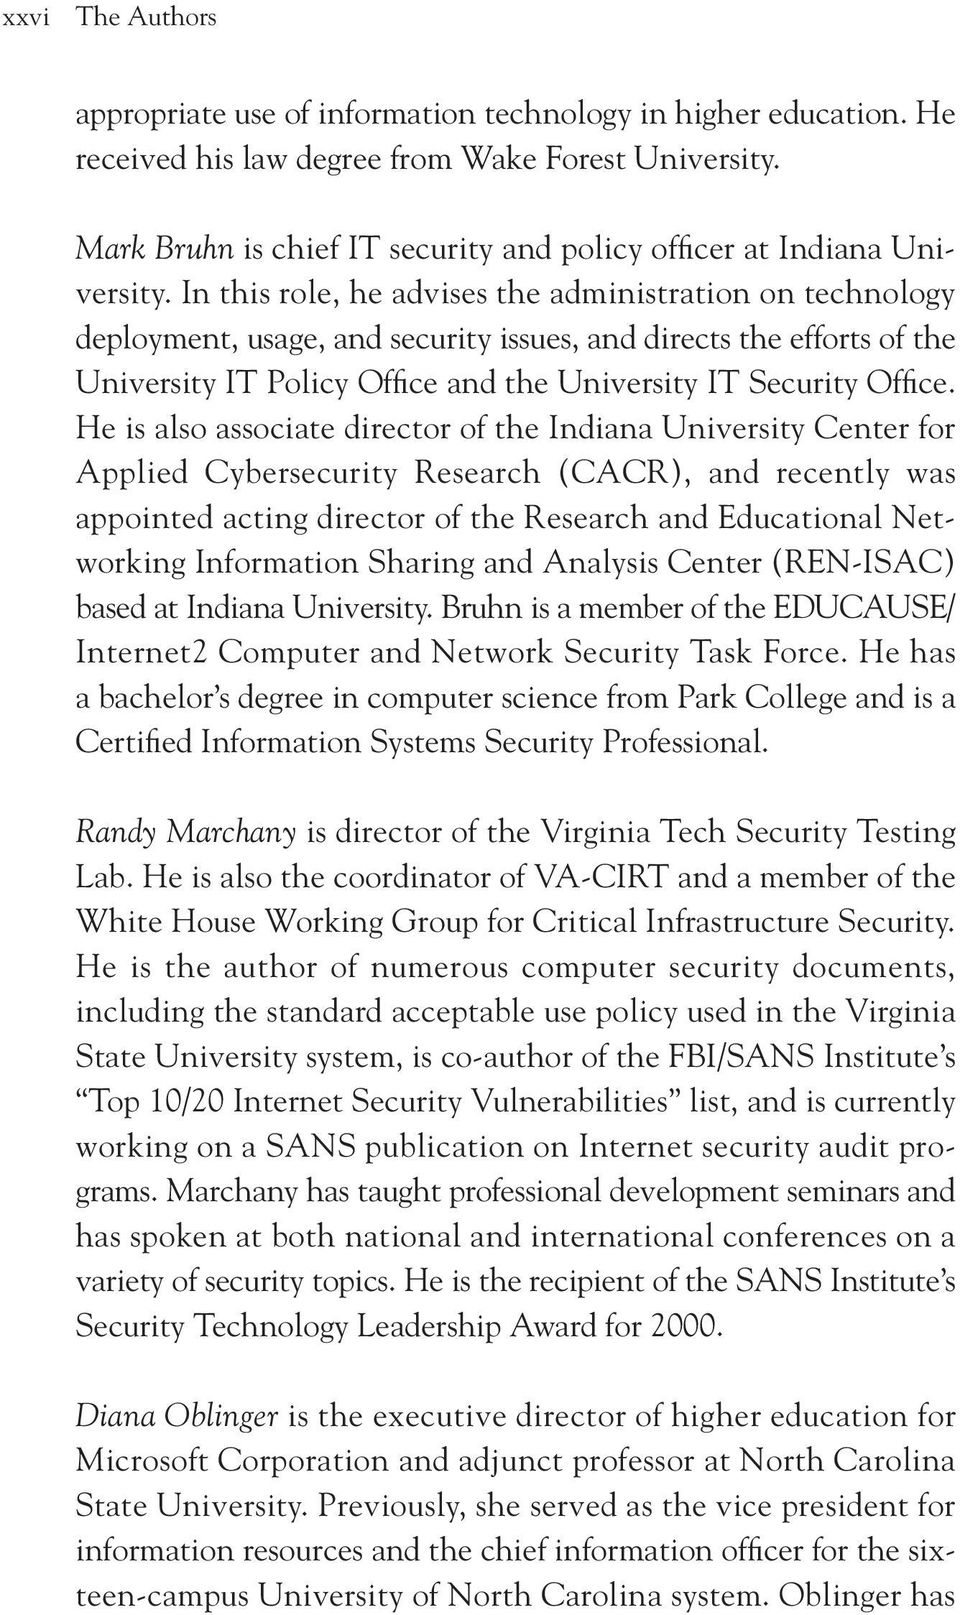 In this role, he advises the administration on technology deployment, usage, and security issues, and directs the efforts of the University IT Policy Office and the University IT Security Office.